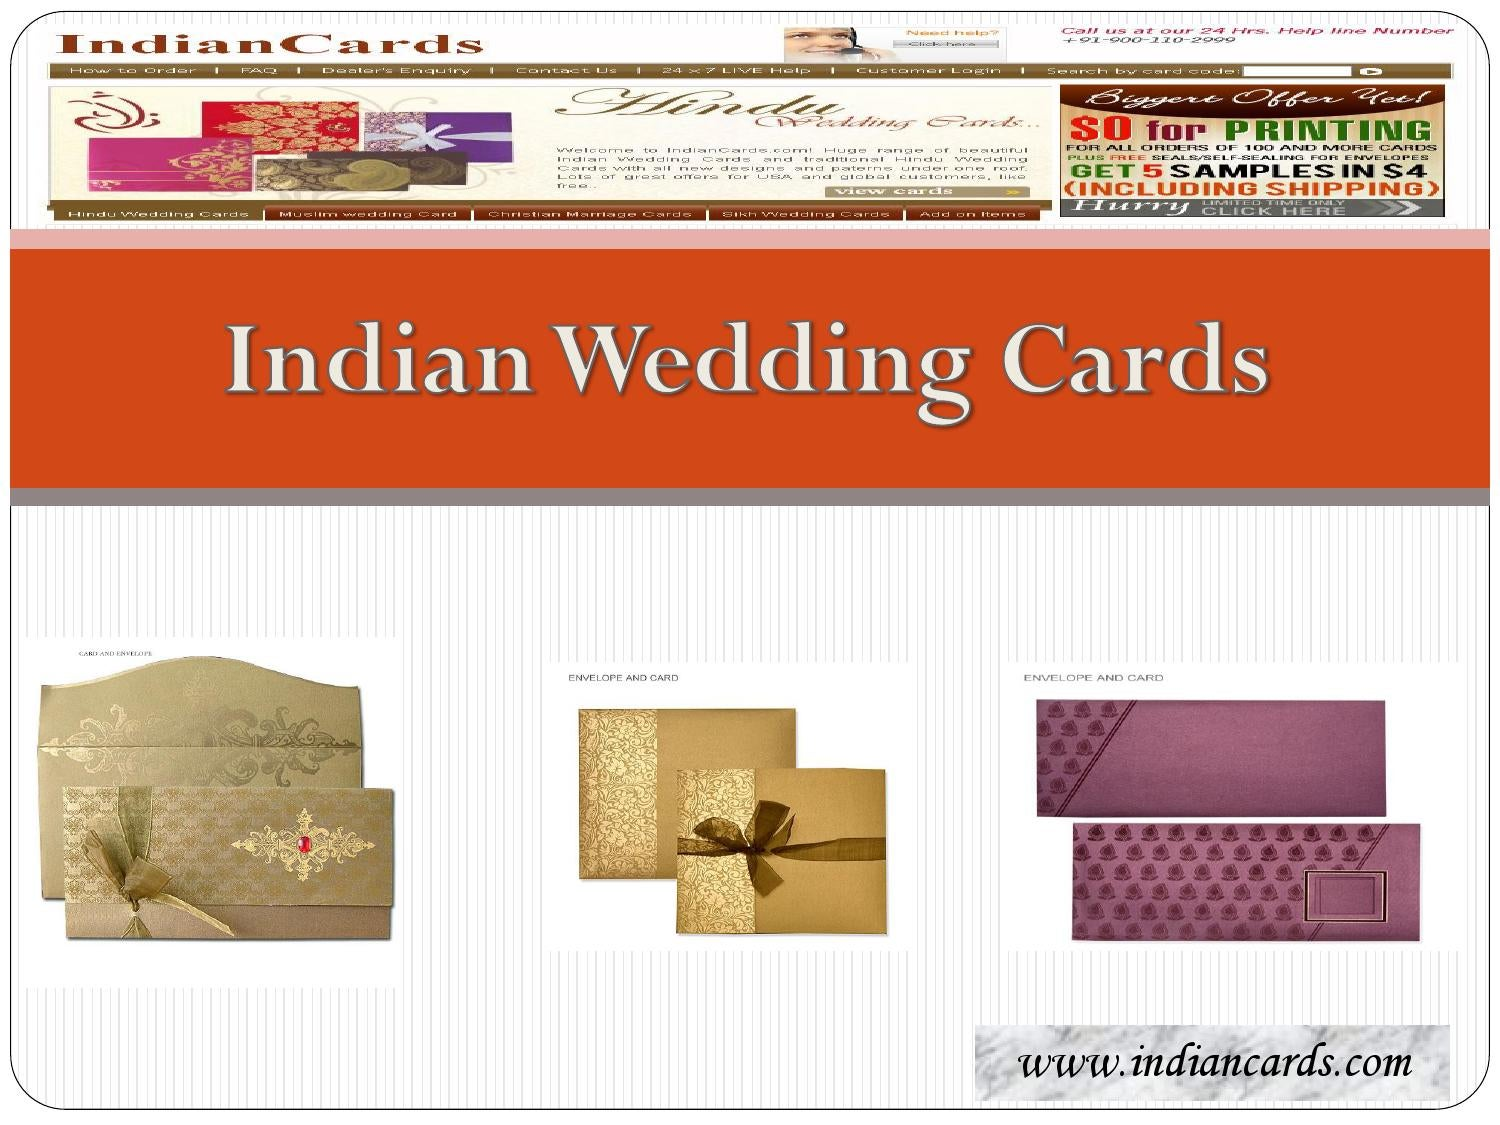 Indian Wedding Cards by Indian Cards - issuu